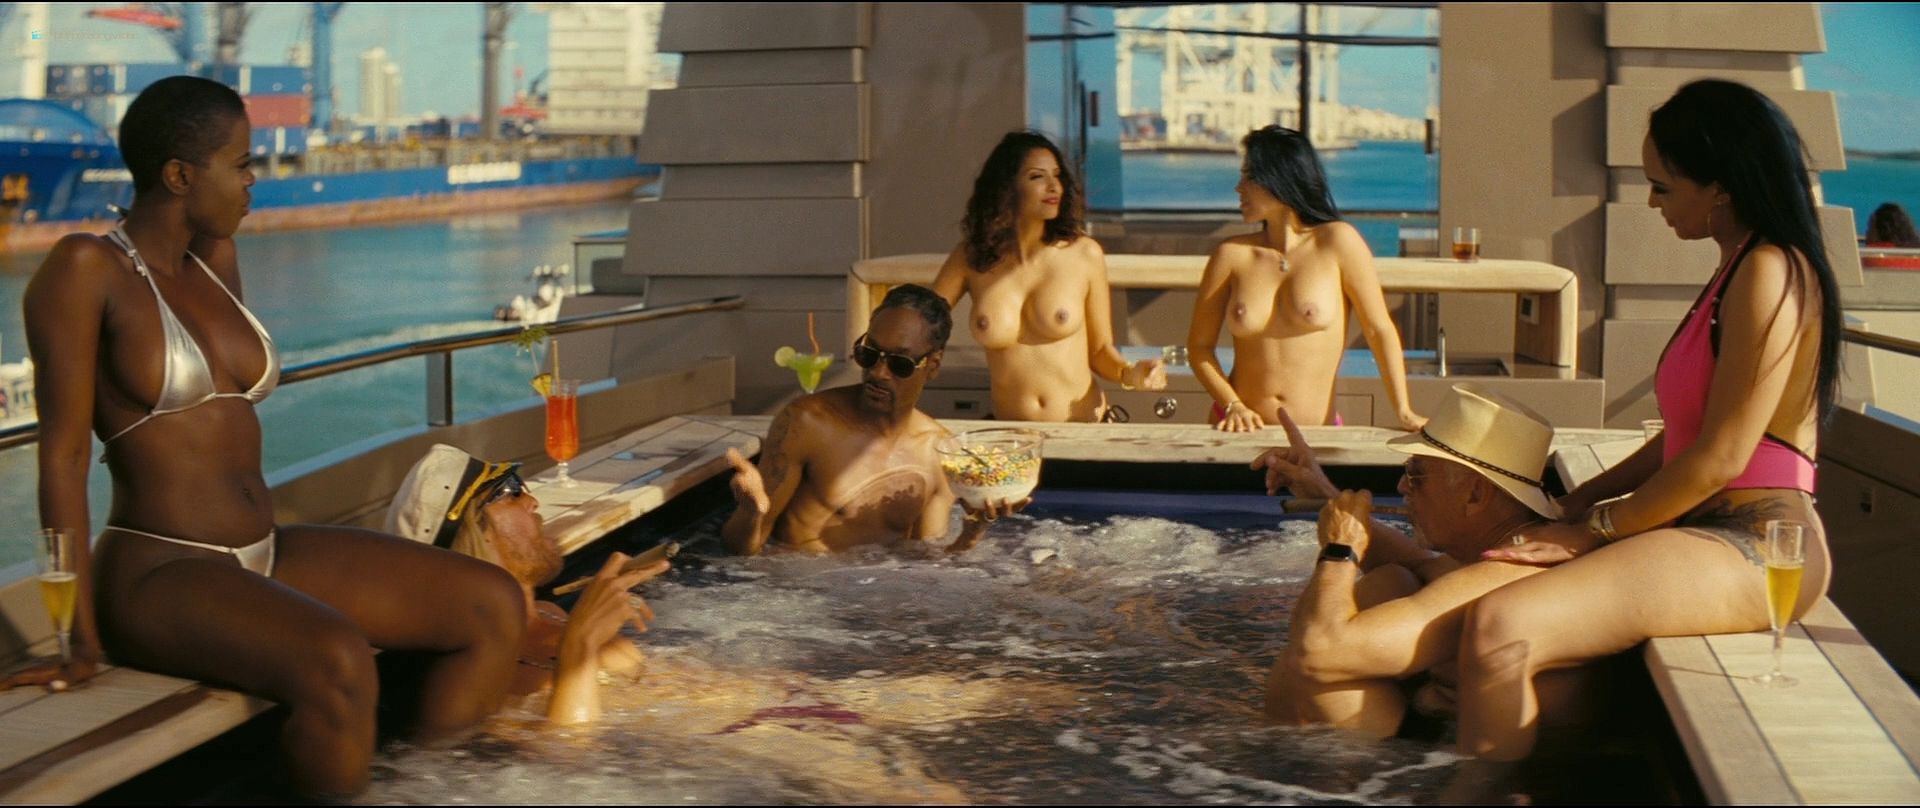 Isla Fisher hot and sexy others nude topless - The Beach Bum (2019) 1080p BluRay (18)